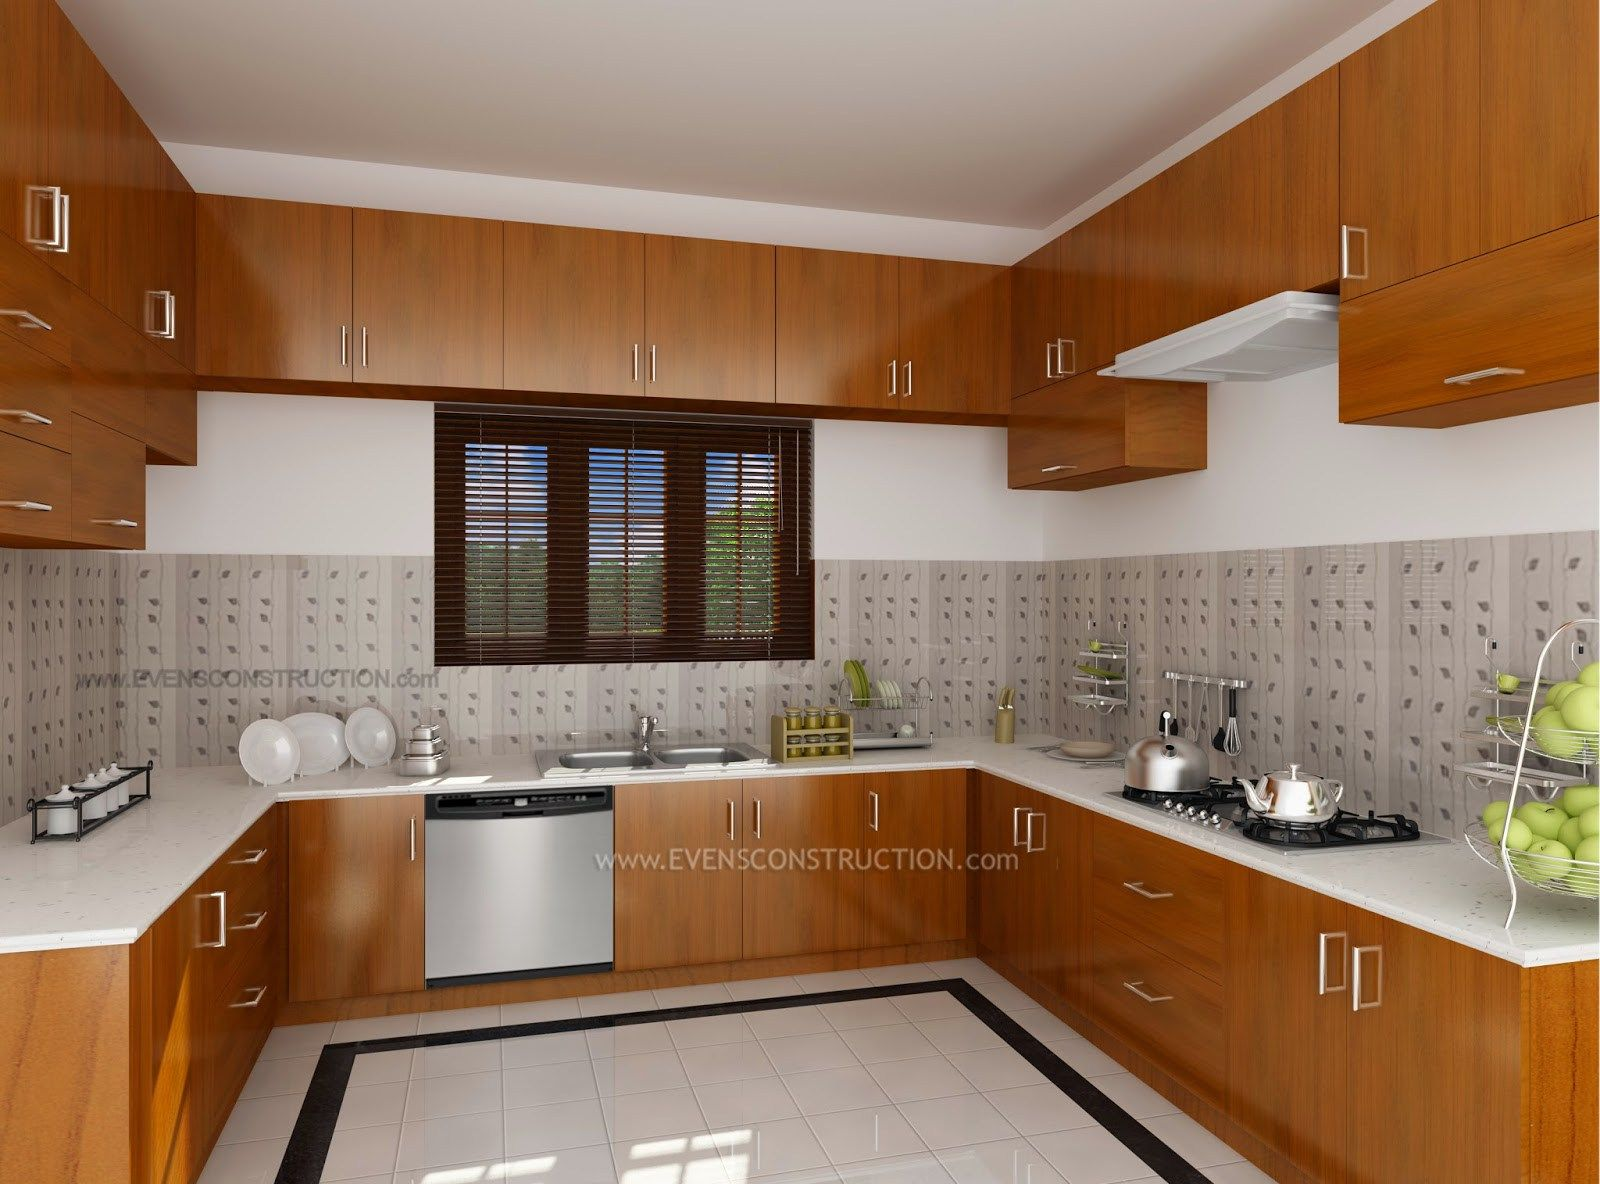 kitchen designs kerala style design interior kitchen home kerala modern house kitchen 269